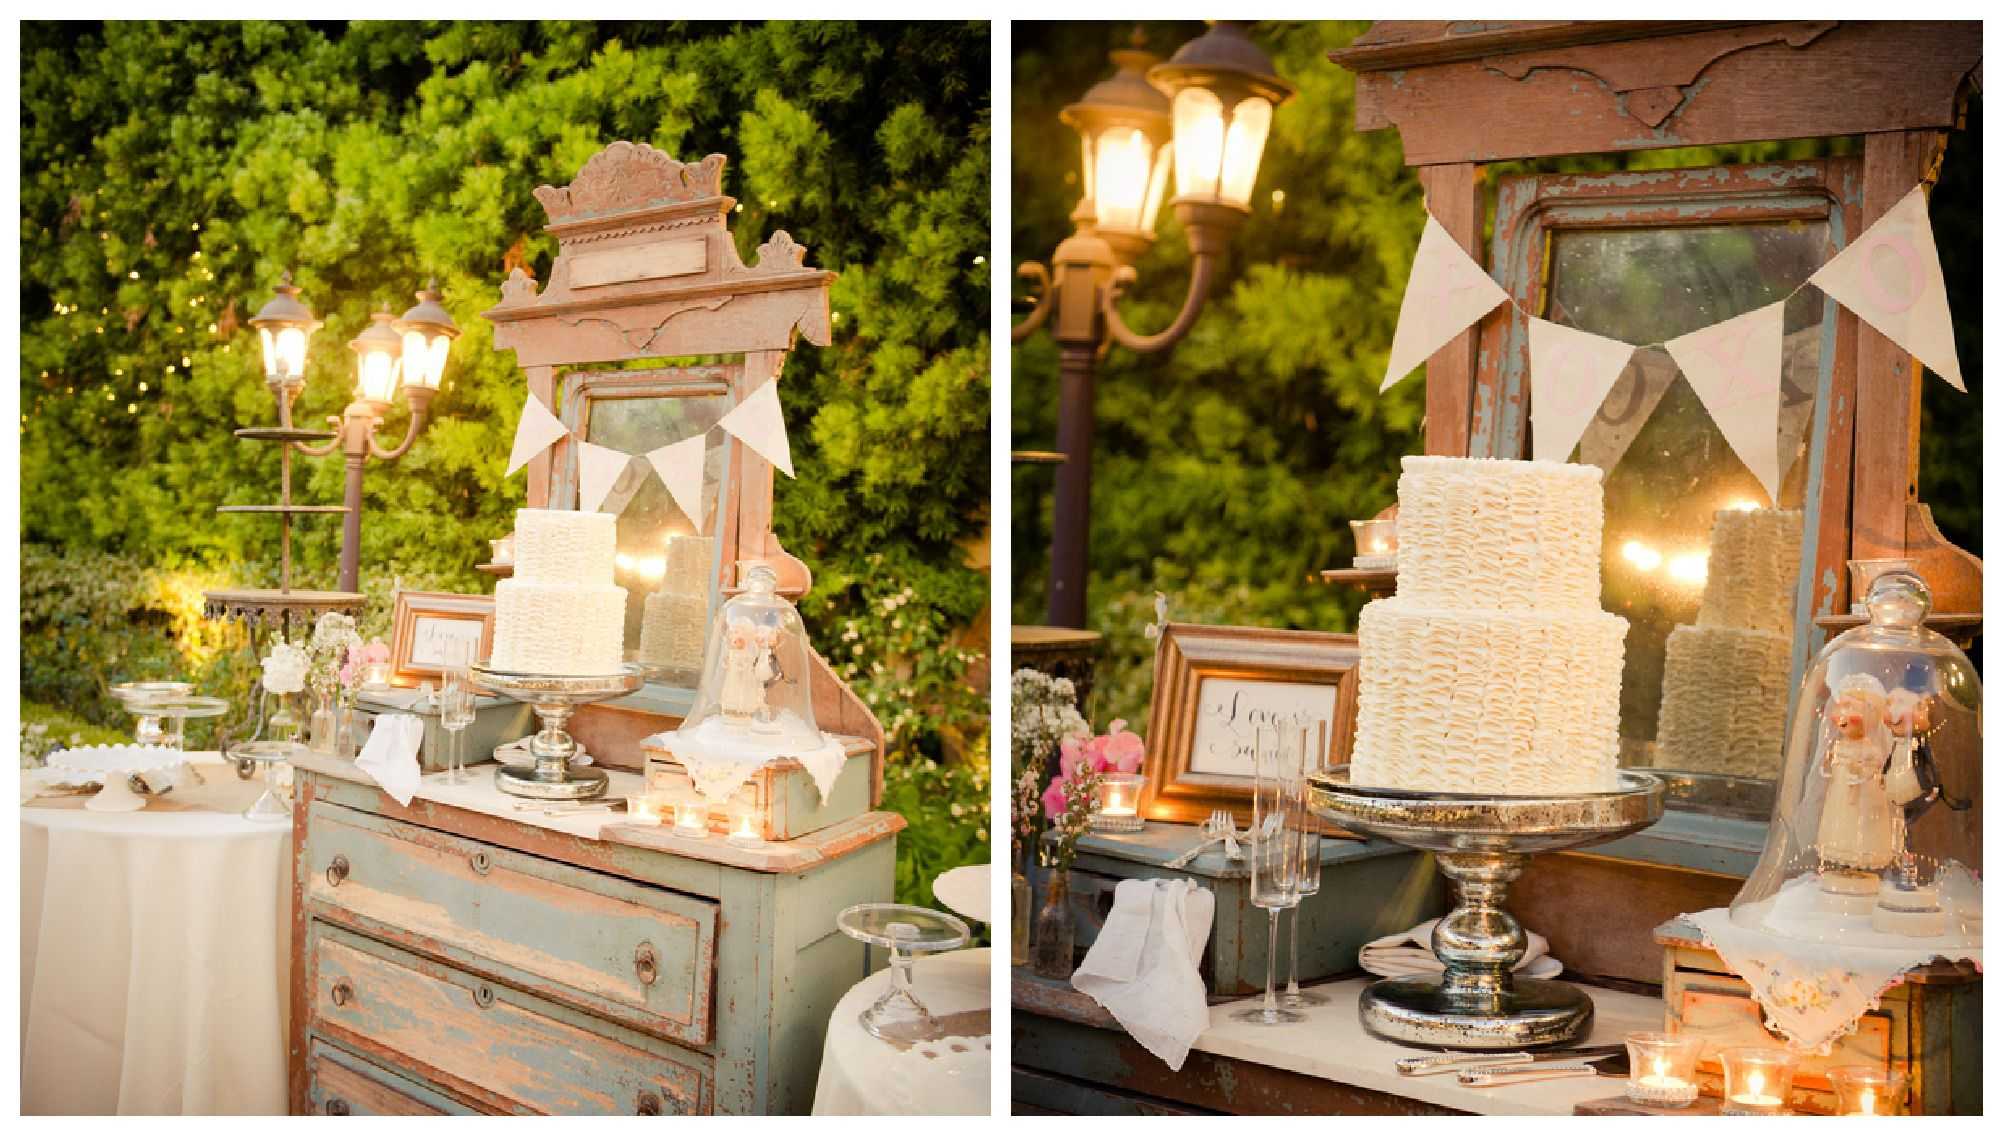 A Country & Vintage Style Wedding - Rustic Wedding Chic - photo#41